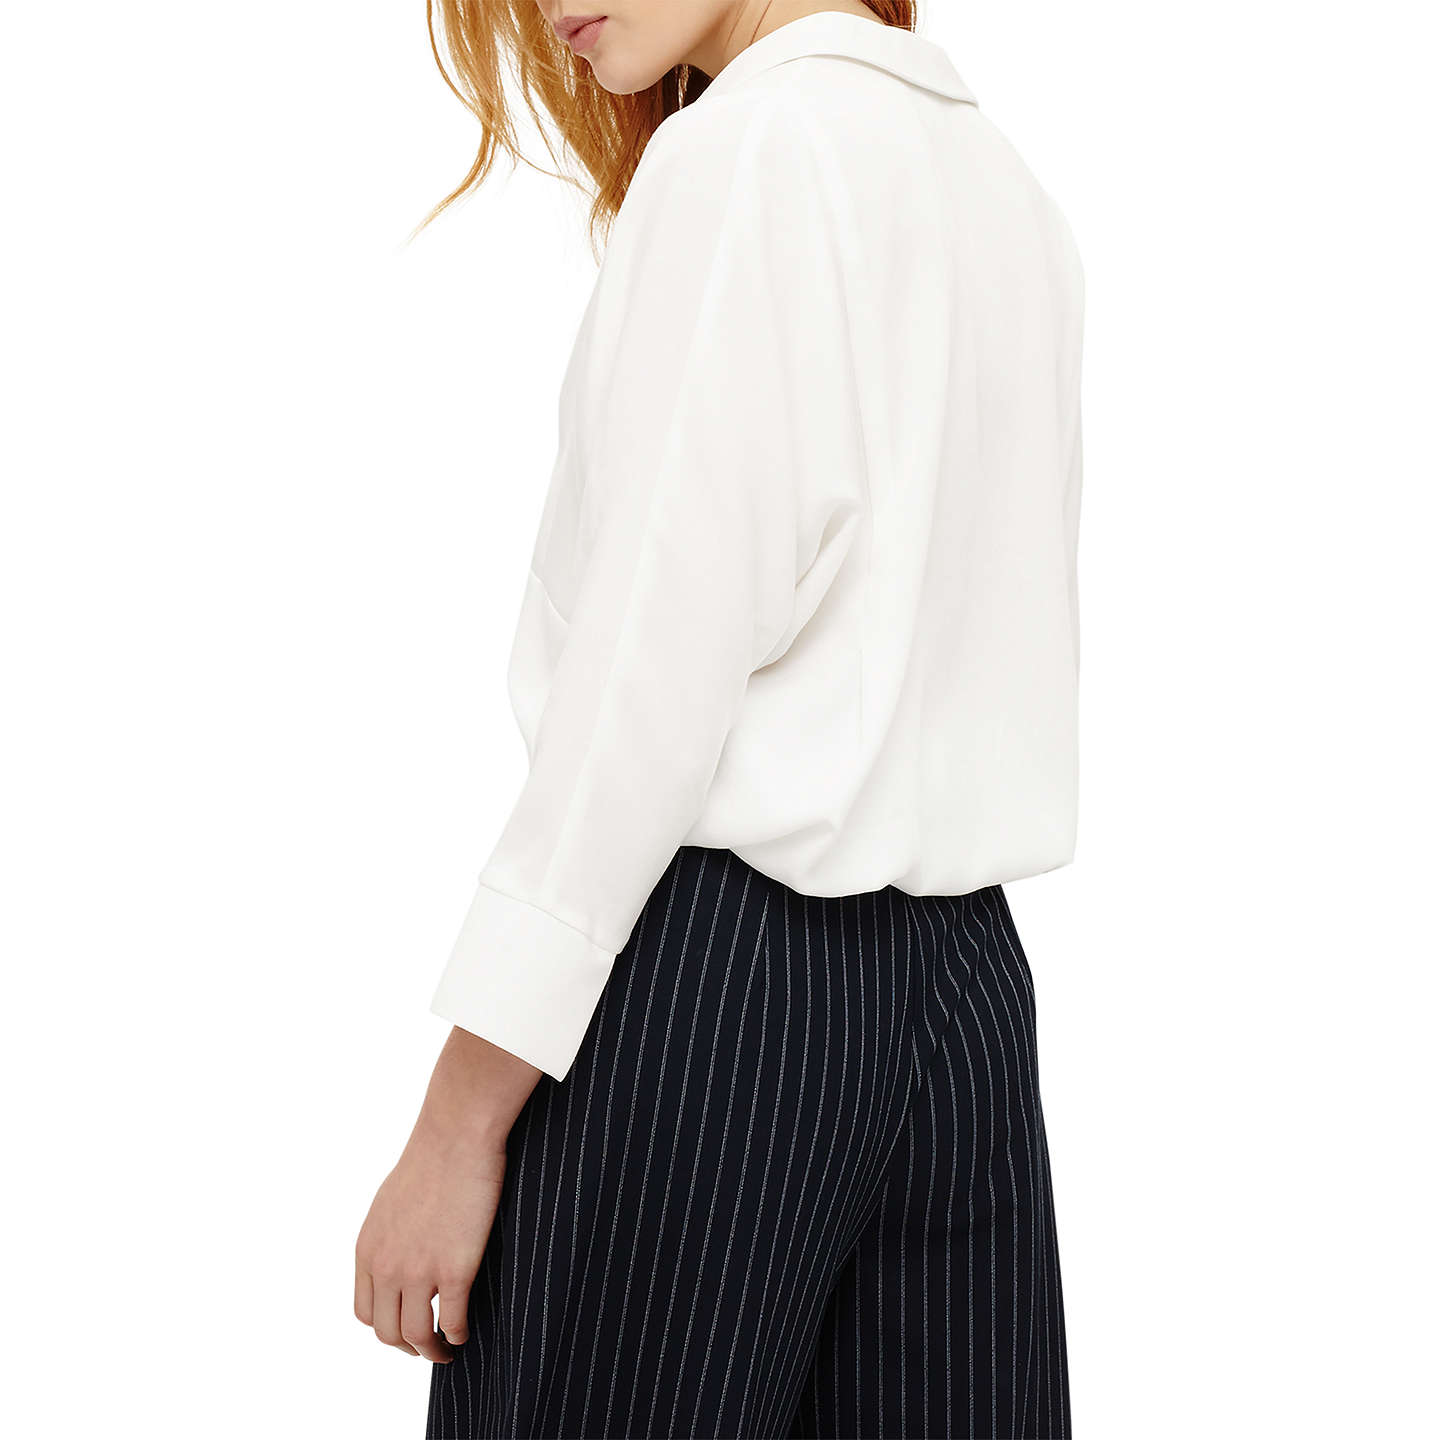 BuyPhase Eight Brogan Shirt, Cream, 8 Online at johnlewis.com